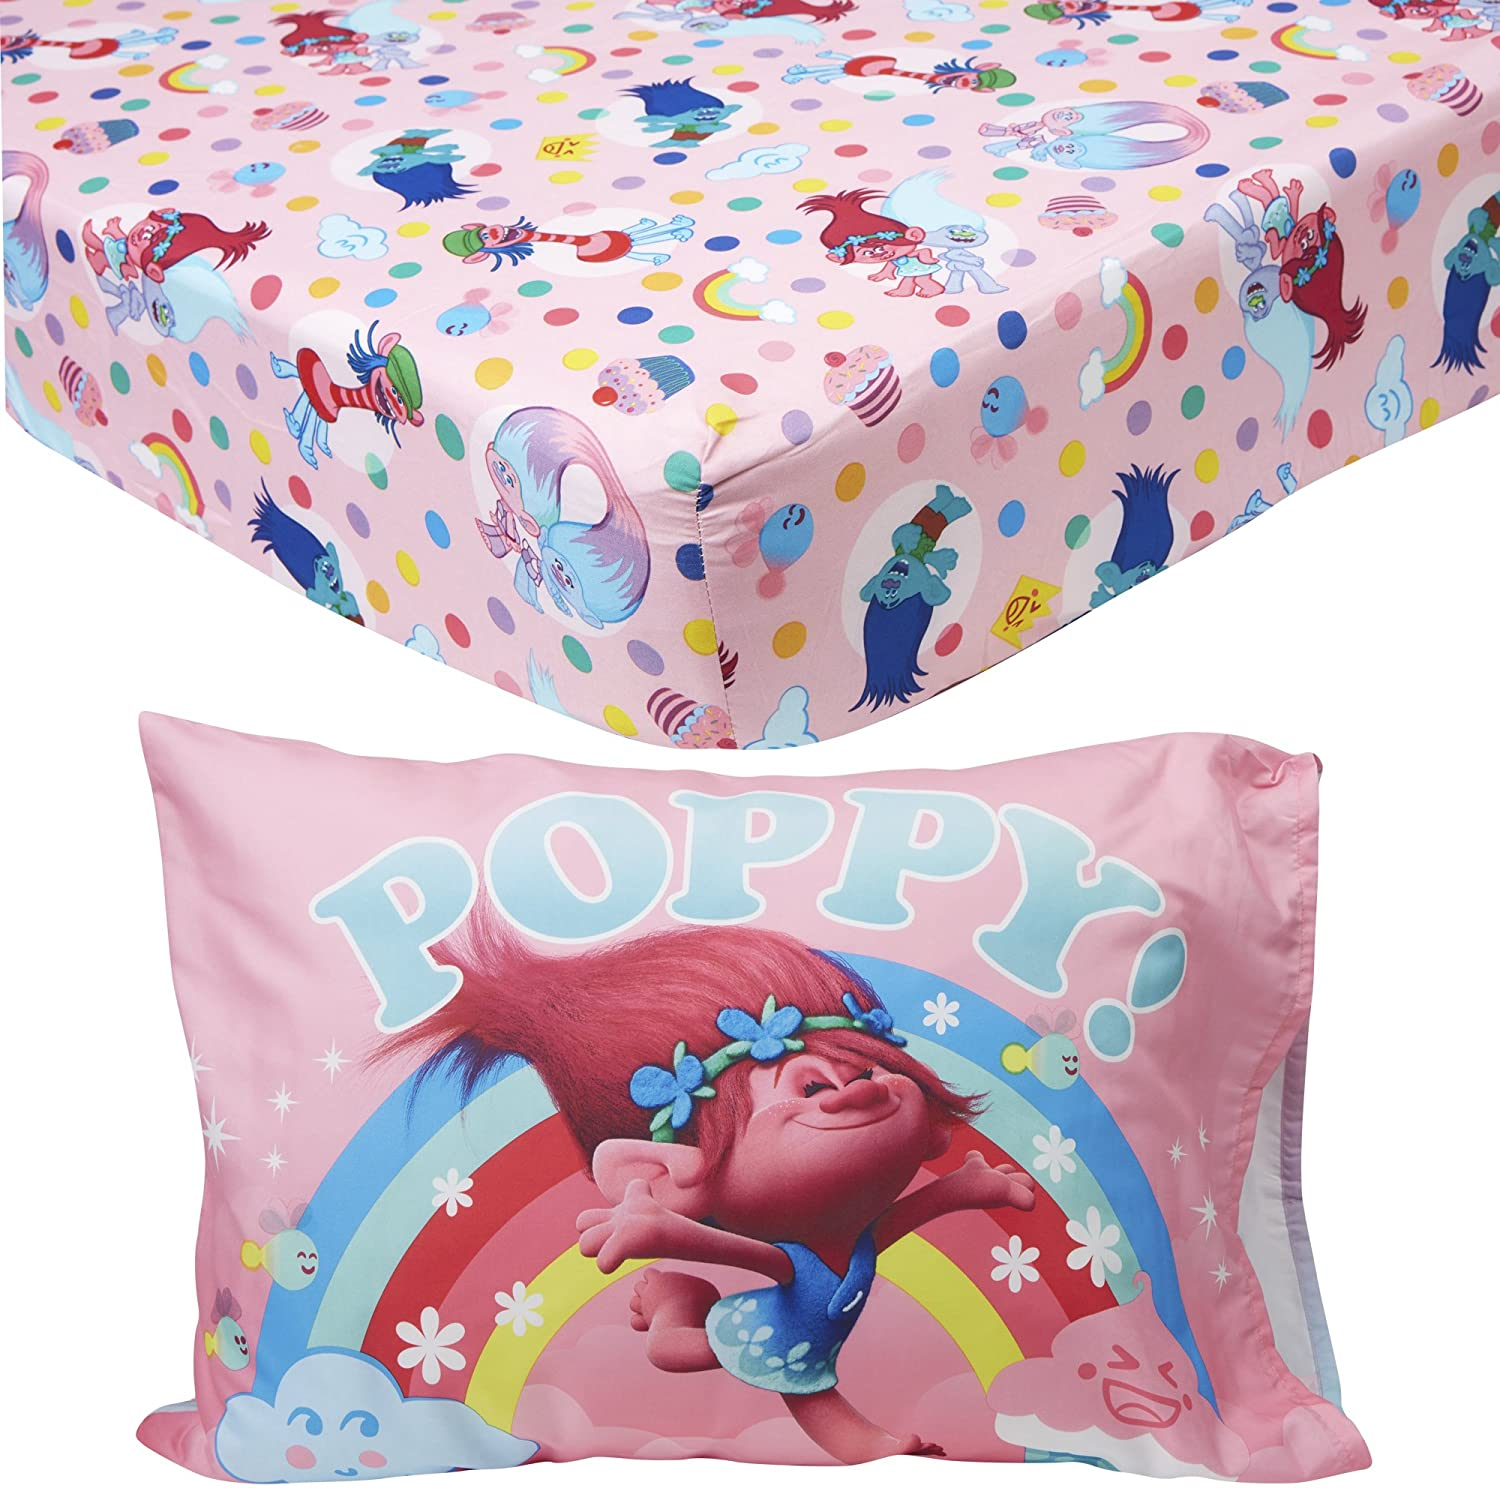 Trolls Toddler Fitted Sheet and Pillow Case Pink